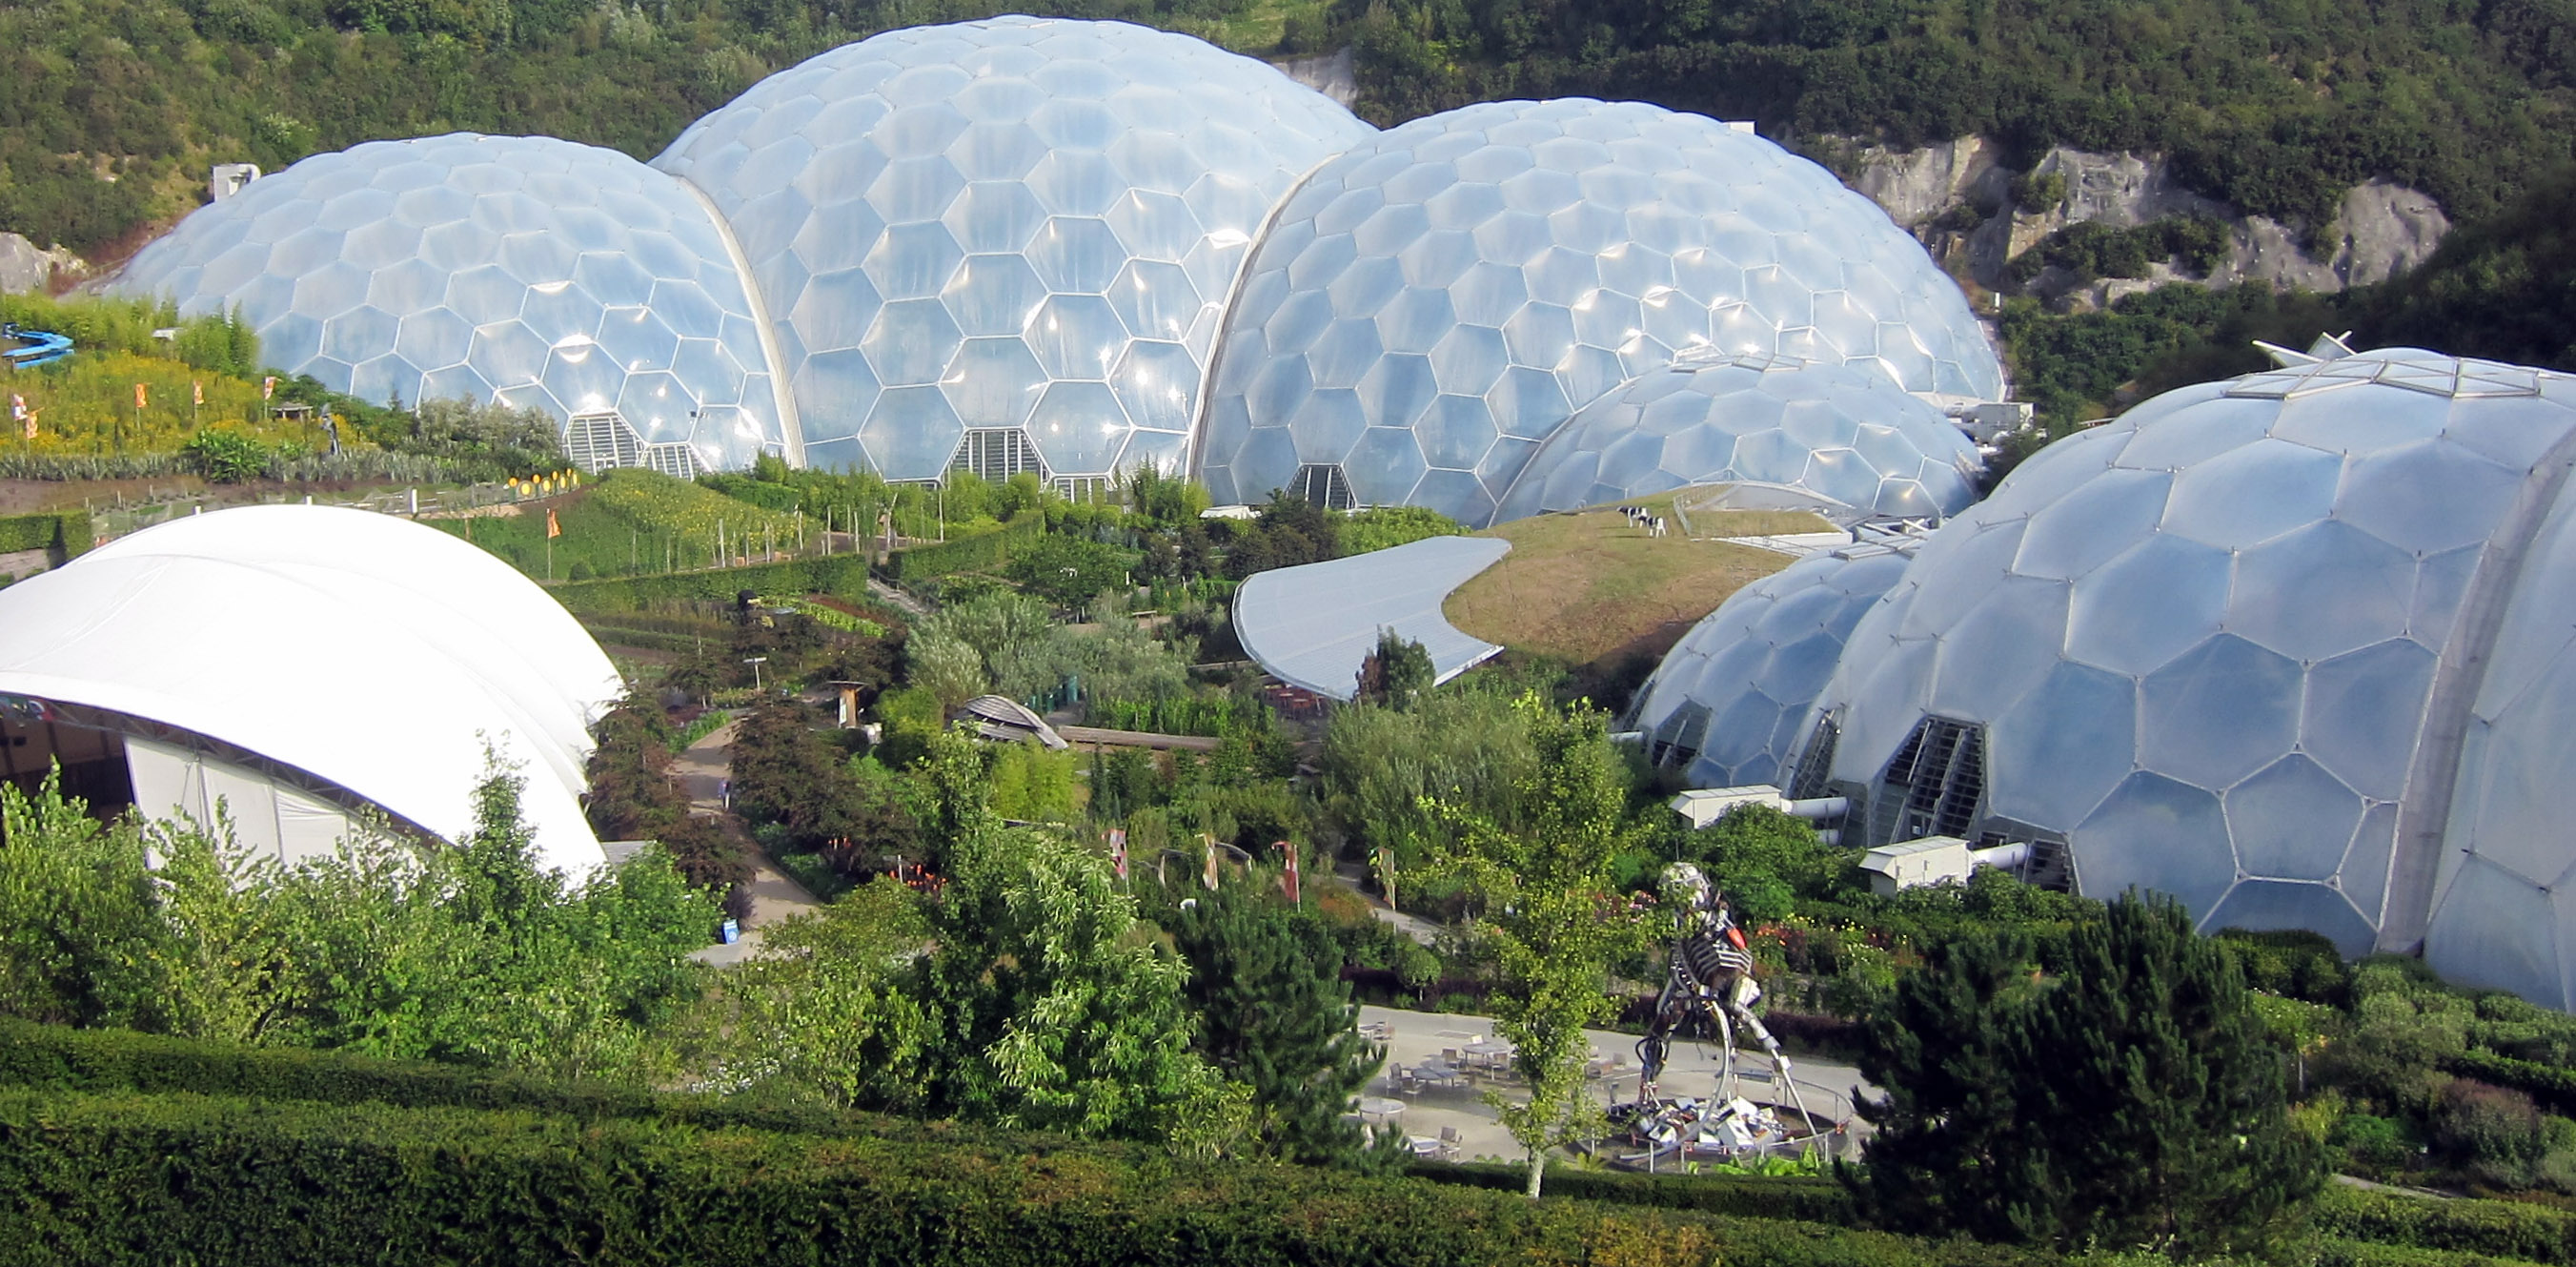 Eden Project Travellersdb